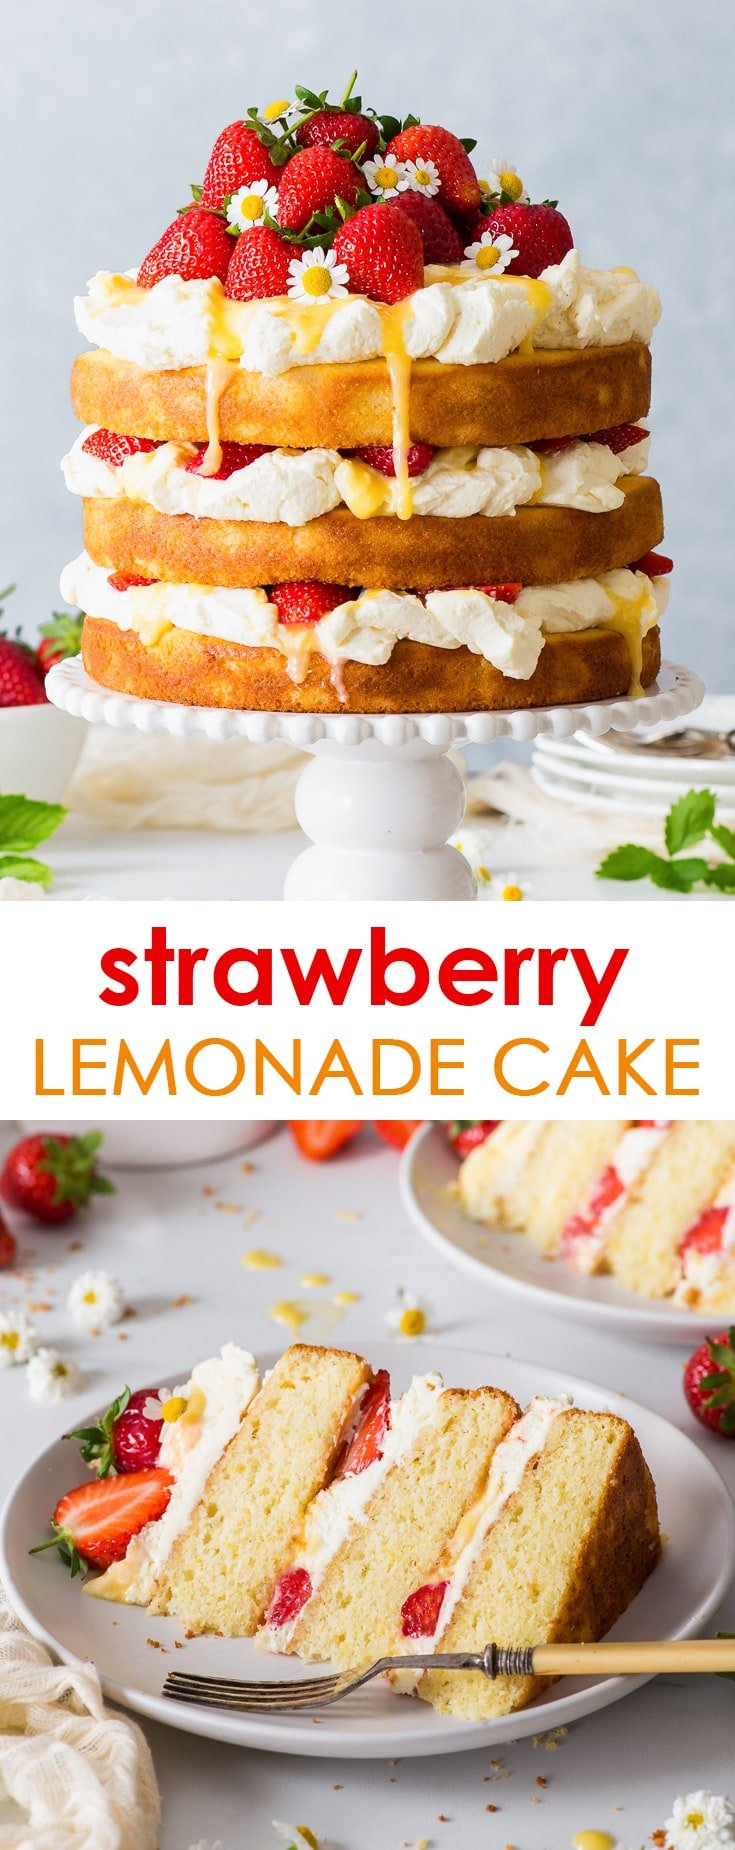 Strawberry Lemonade Cake (Gluten Free) - [SPONSORED] Strawberries, lemon curd, fluffly lemon sponges, the most delicious mascarpone frosting… this strawberry lemonade cake couldn't be more delicious if it tried. Have I mentioned it's also easy to make and gluten free? Lemon cake recipe. Gluten free cake. Naked cake. Mascarpone cheese frosting. Strawberry cake. Summer recipes. Cake decorating. Whipped cream frosting. Layer cake recipe. #cake #glutenfree